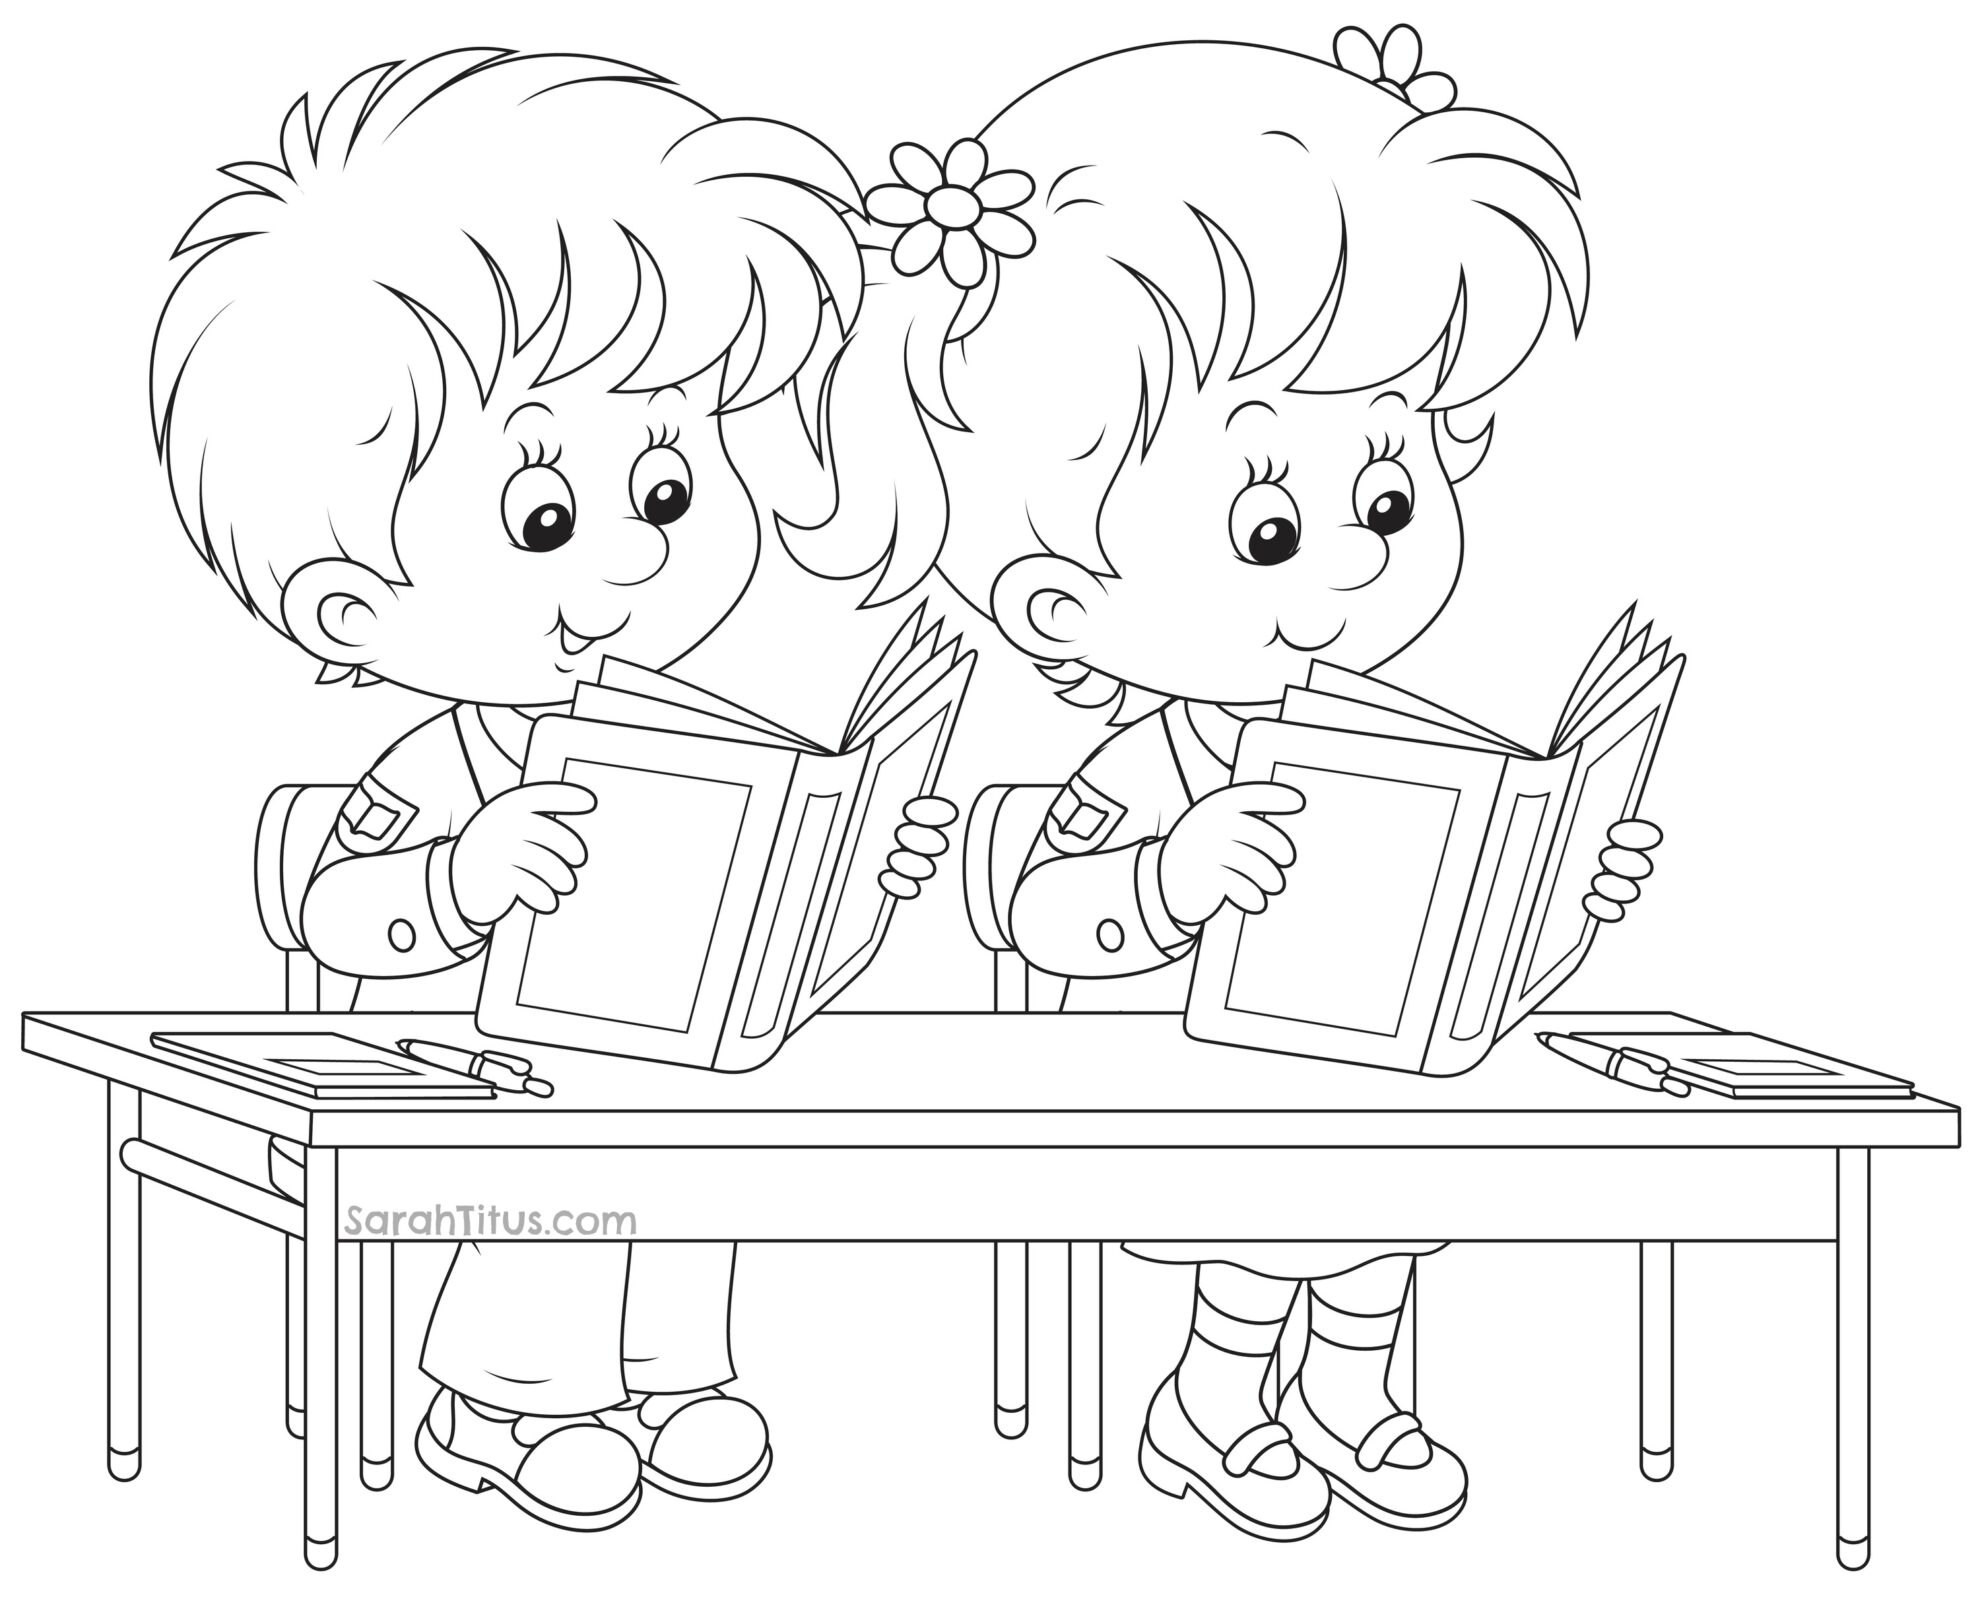 coloring pages back to school - photo#9